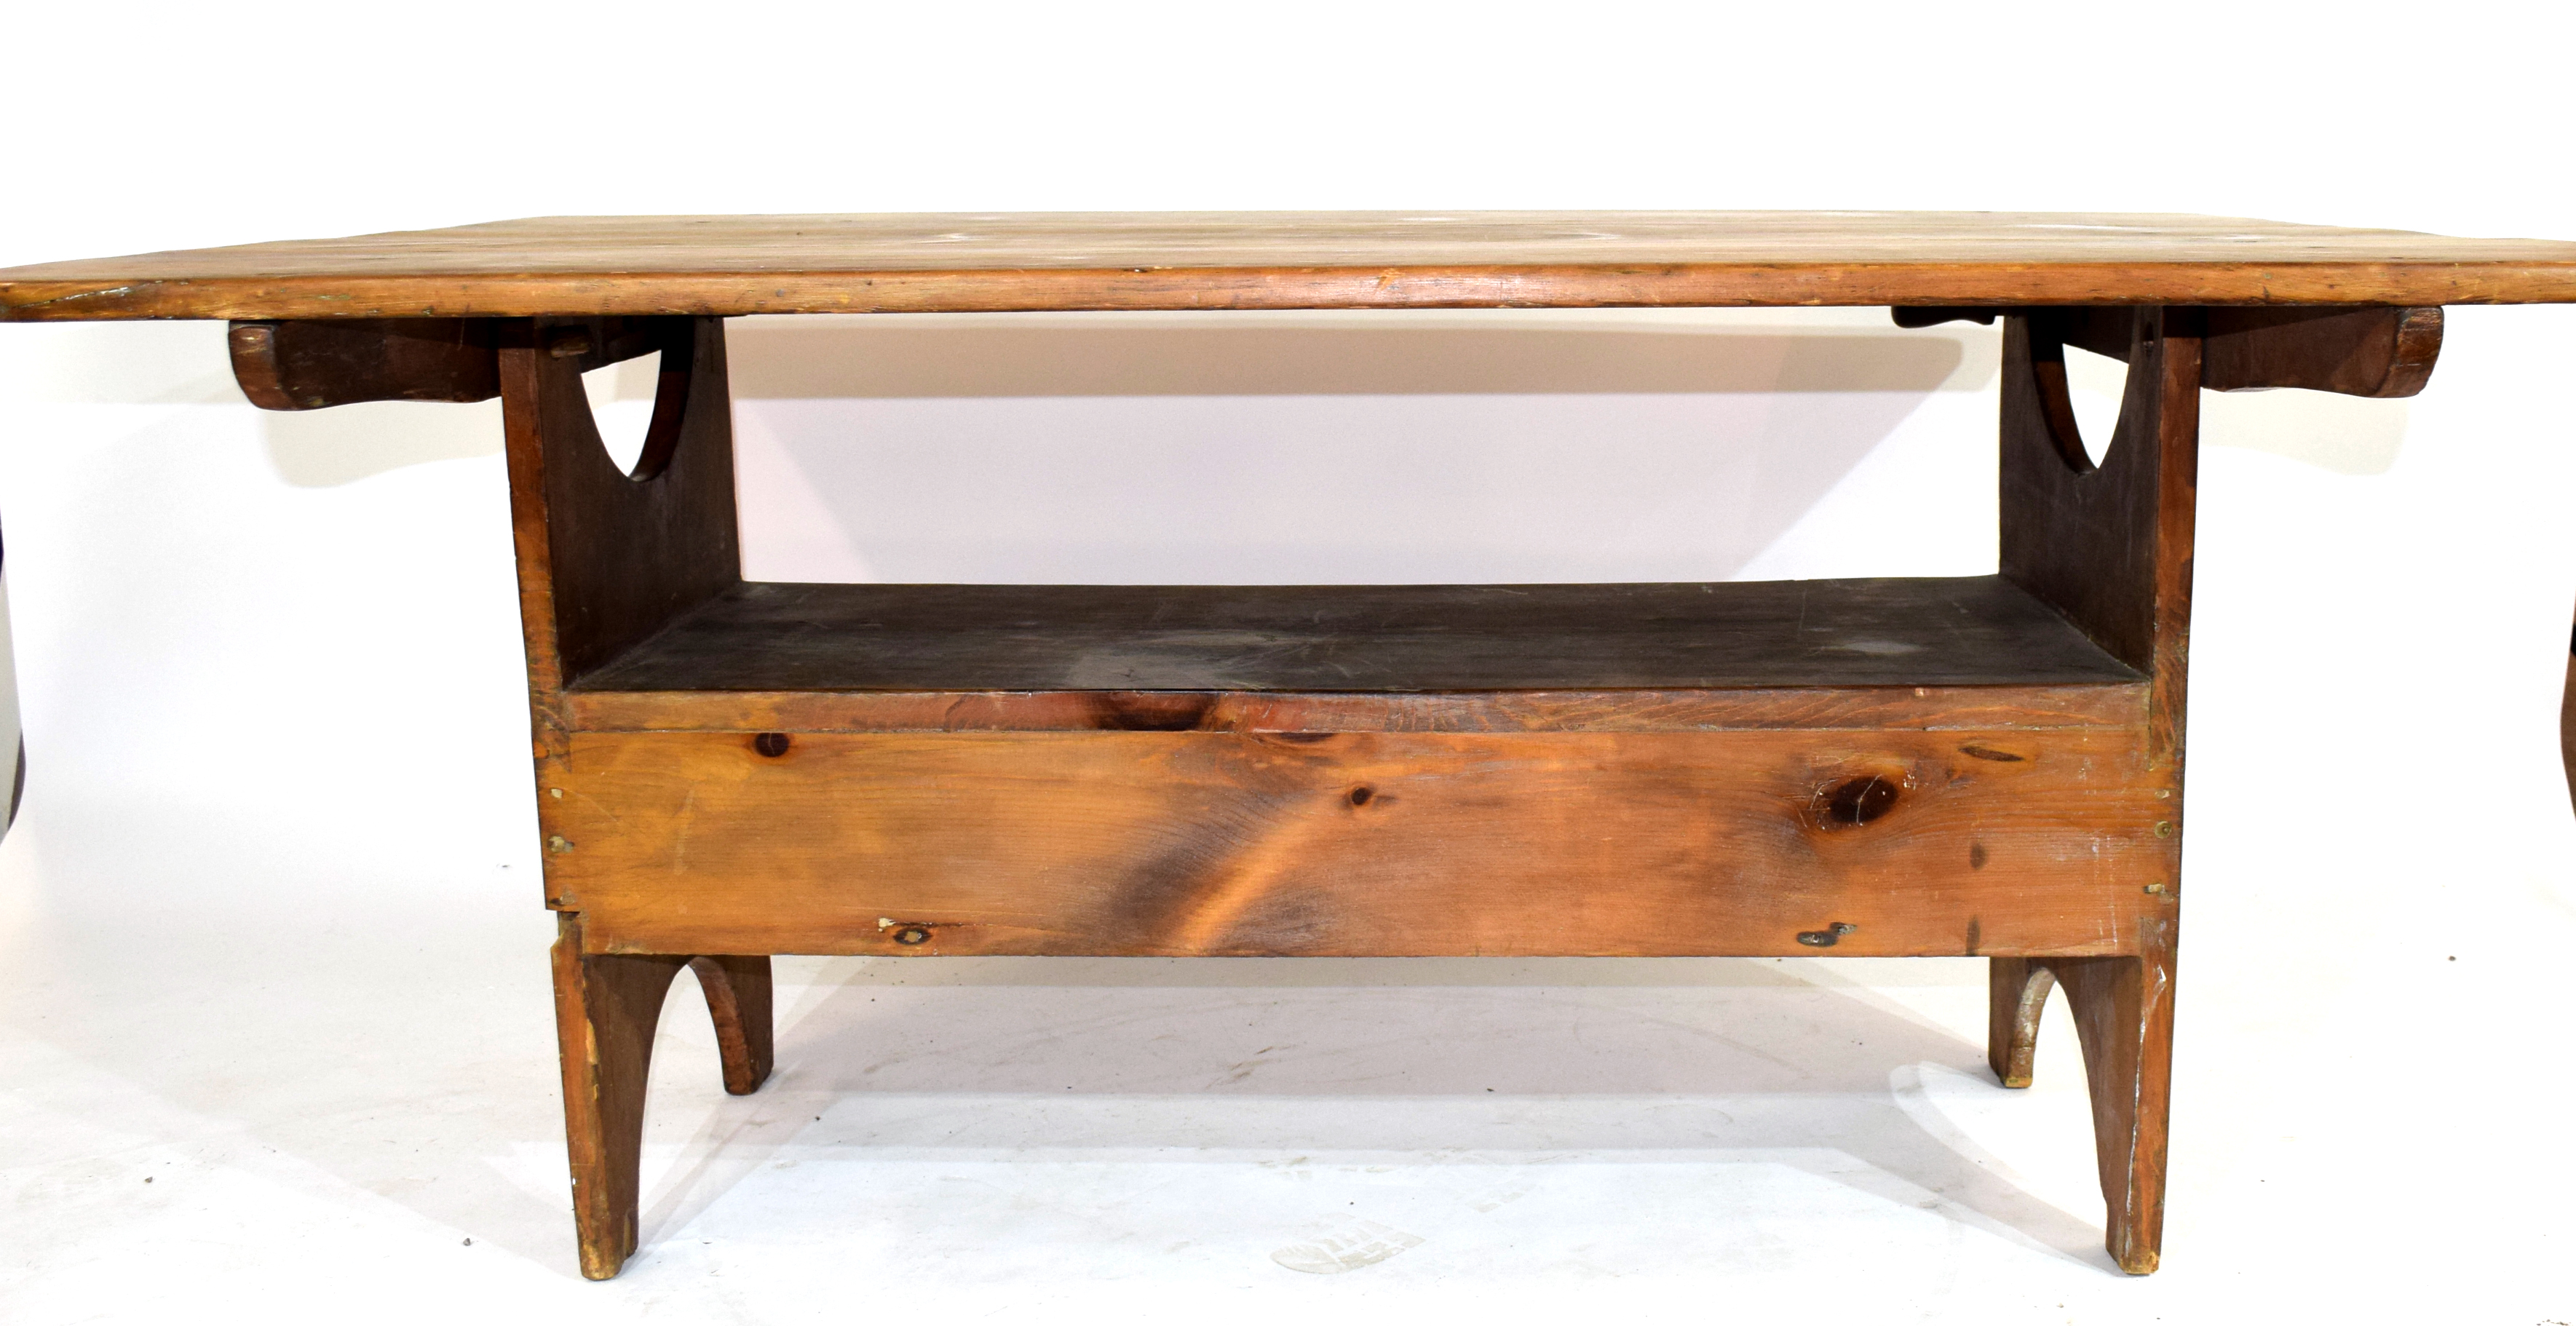 Unusual 20th century stained pine kitchen table, the rectangular top with pegged attachment to a - Image 3 of 4